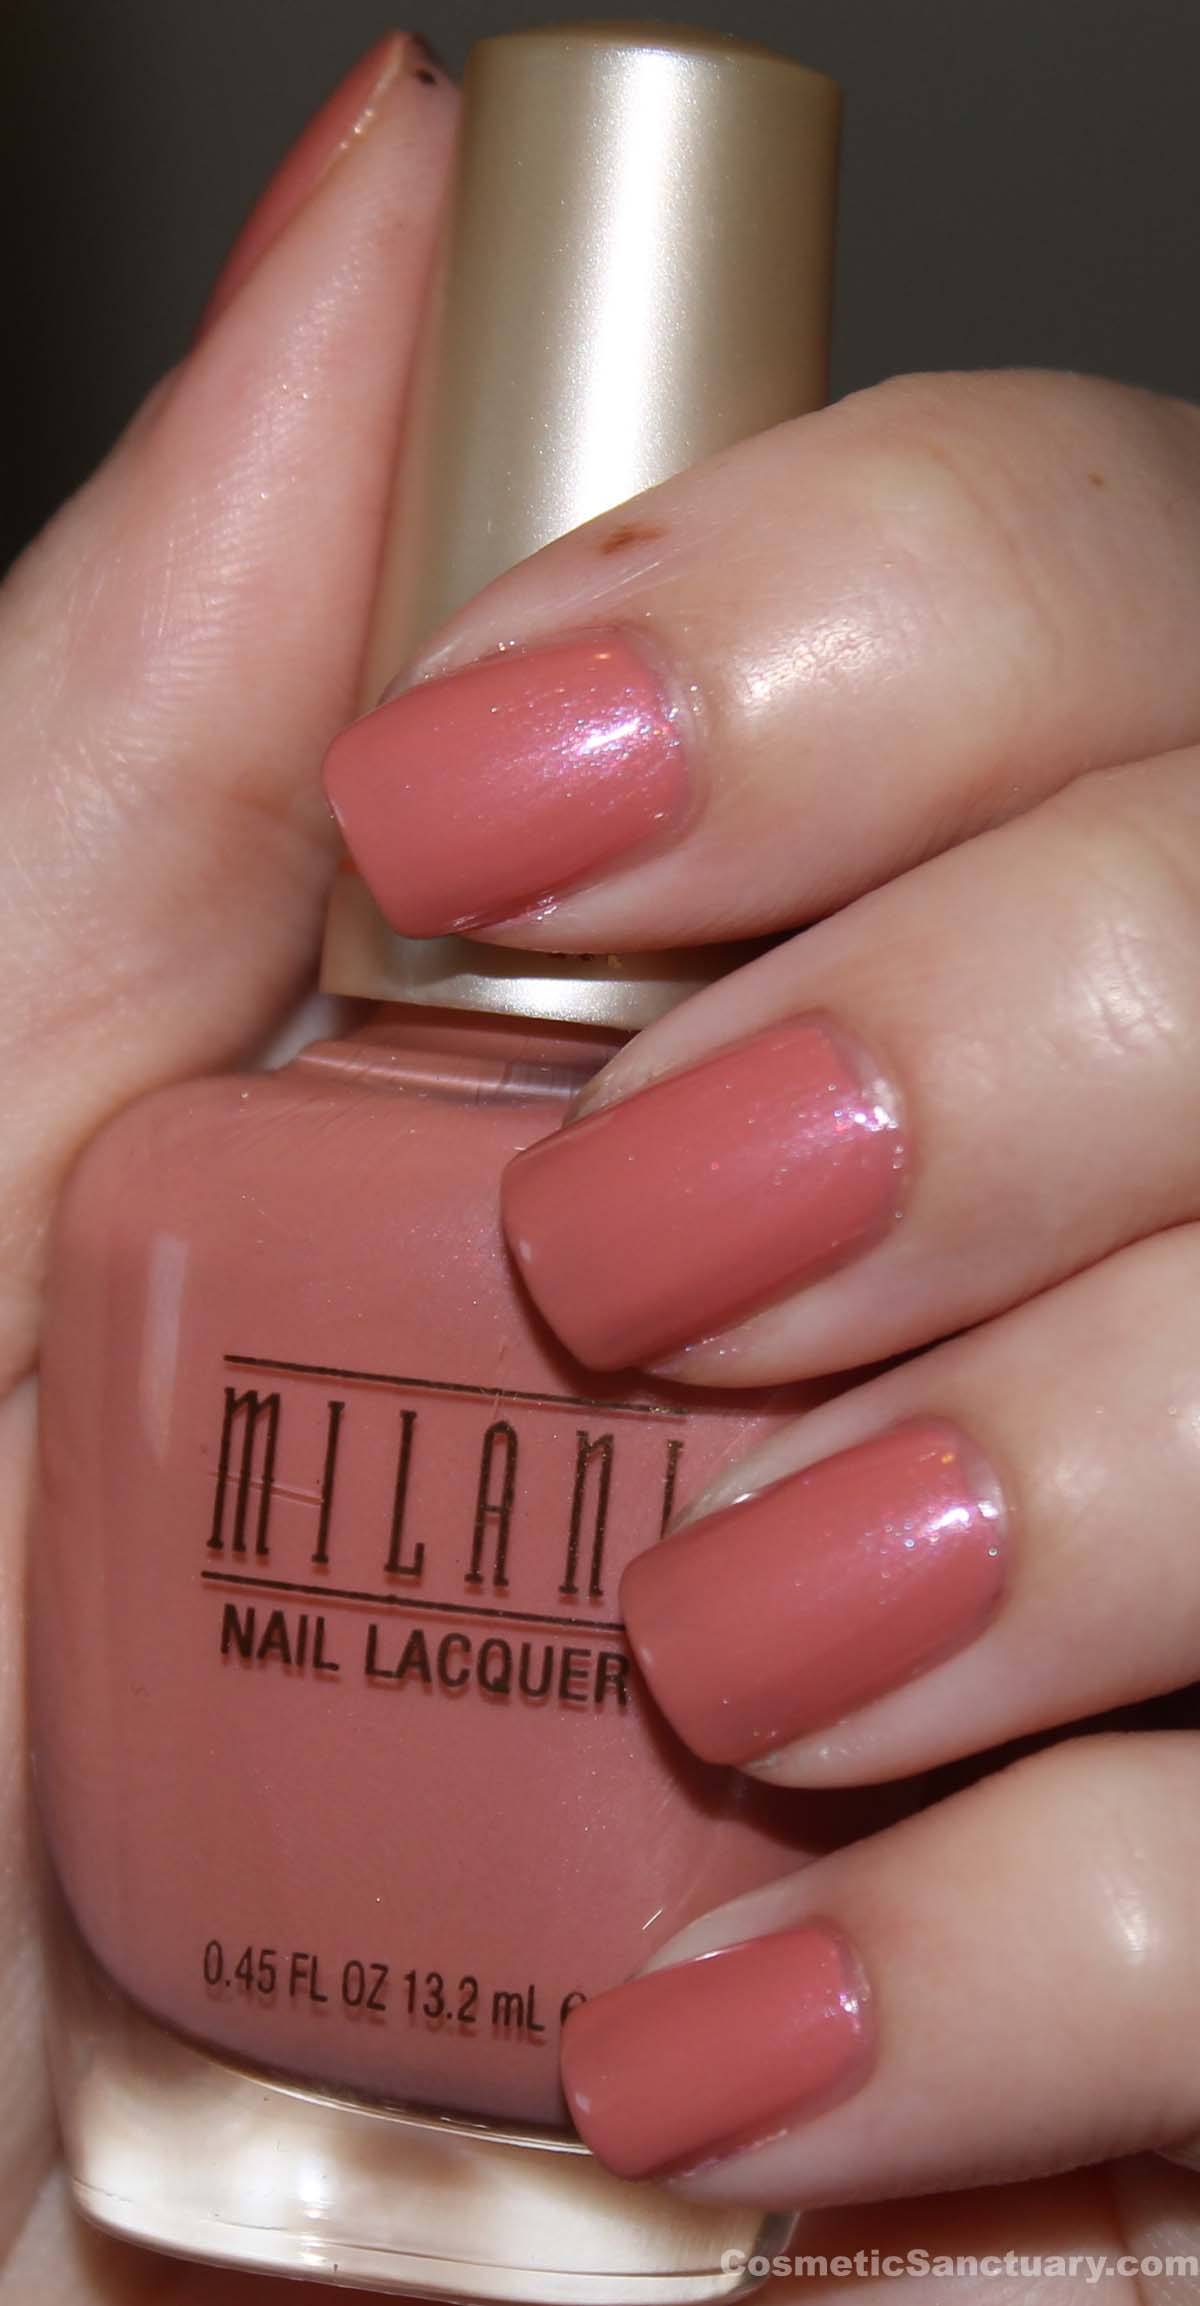 Milani Nail Lacquer Swatches and Reviews - CVS Exclusives!